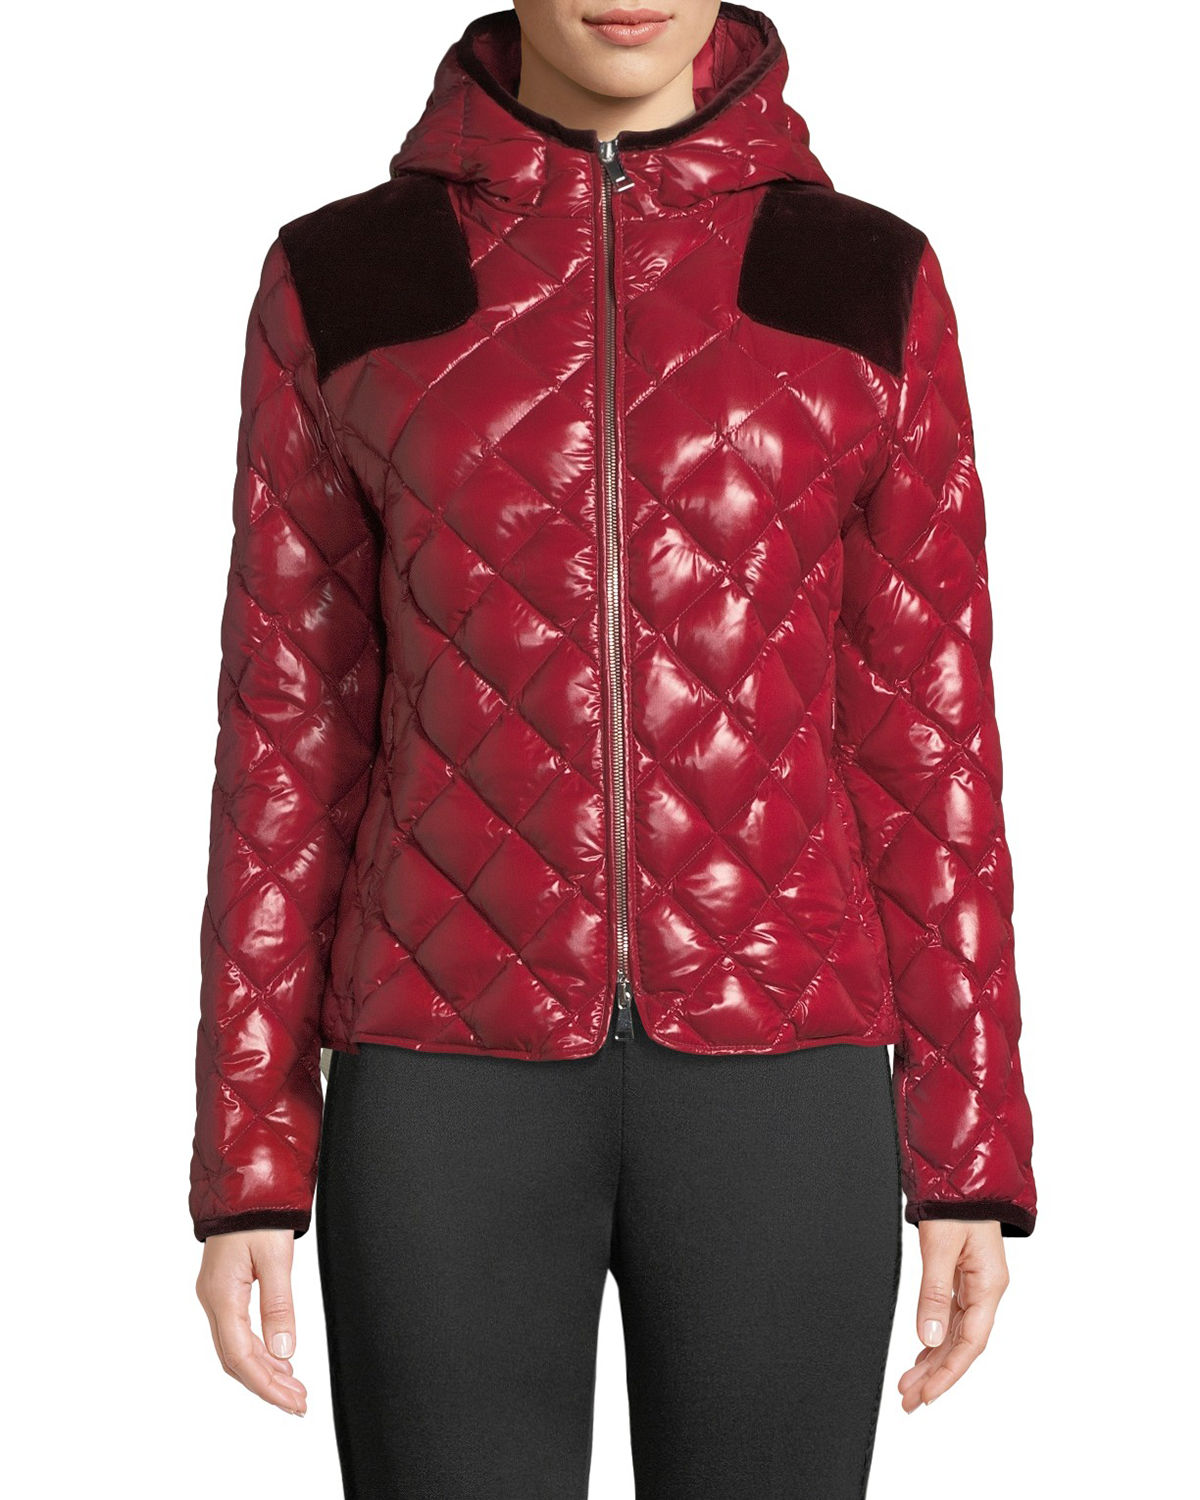 16a727f023 Harle Quilted Jacket W/ Contrast in Red